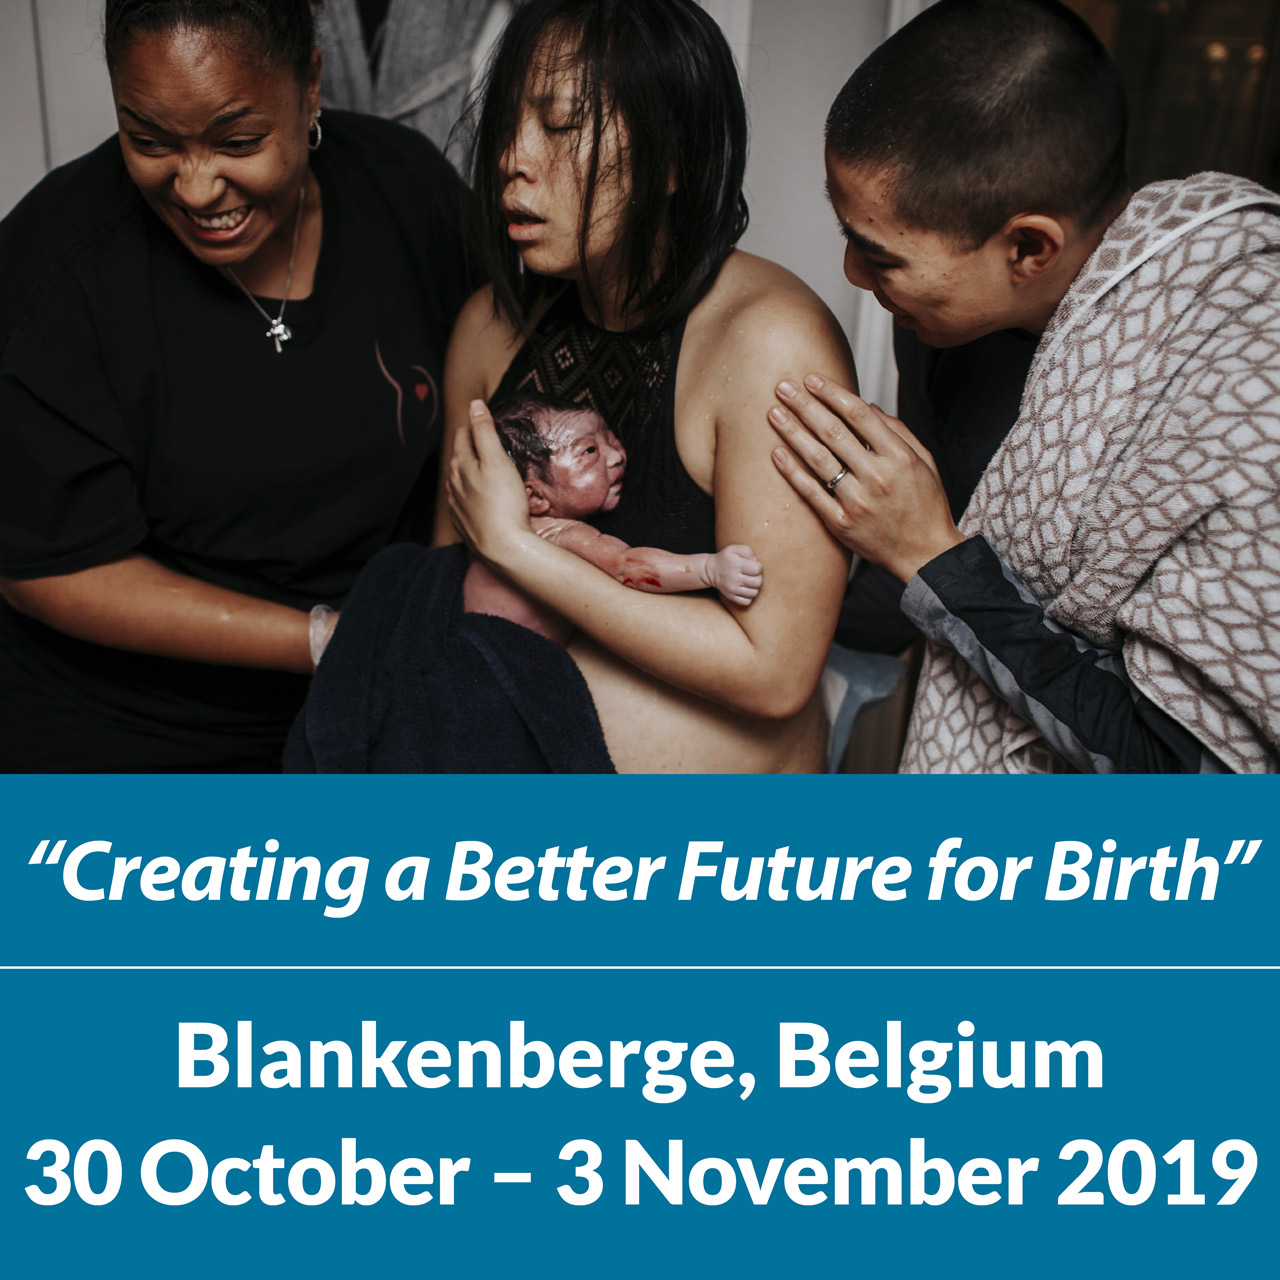 Blankenberge, Belgium   30 October – 3 November 2019